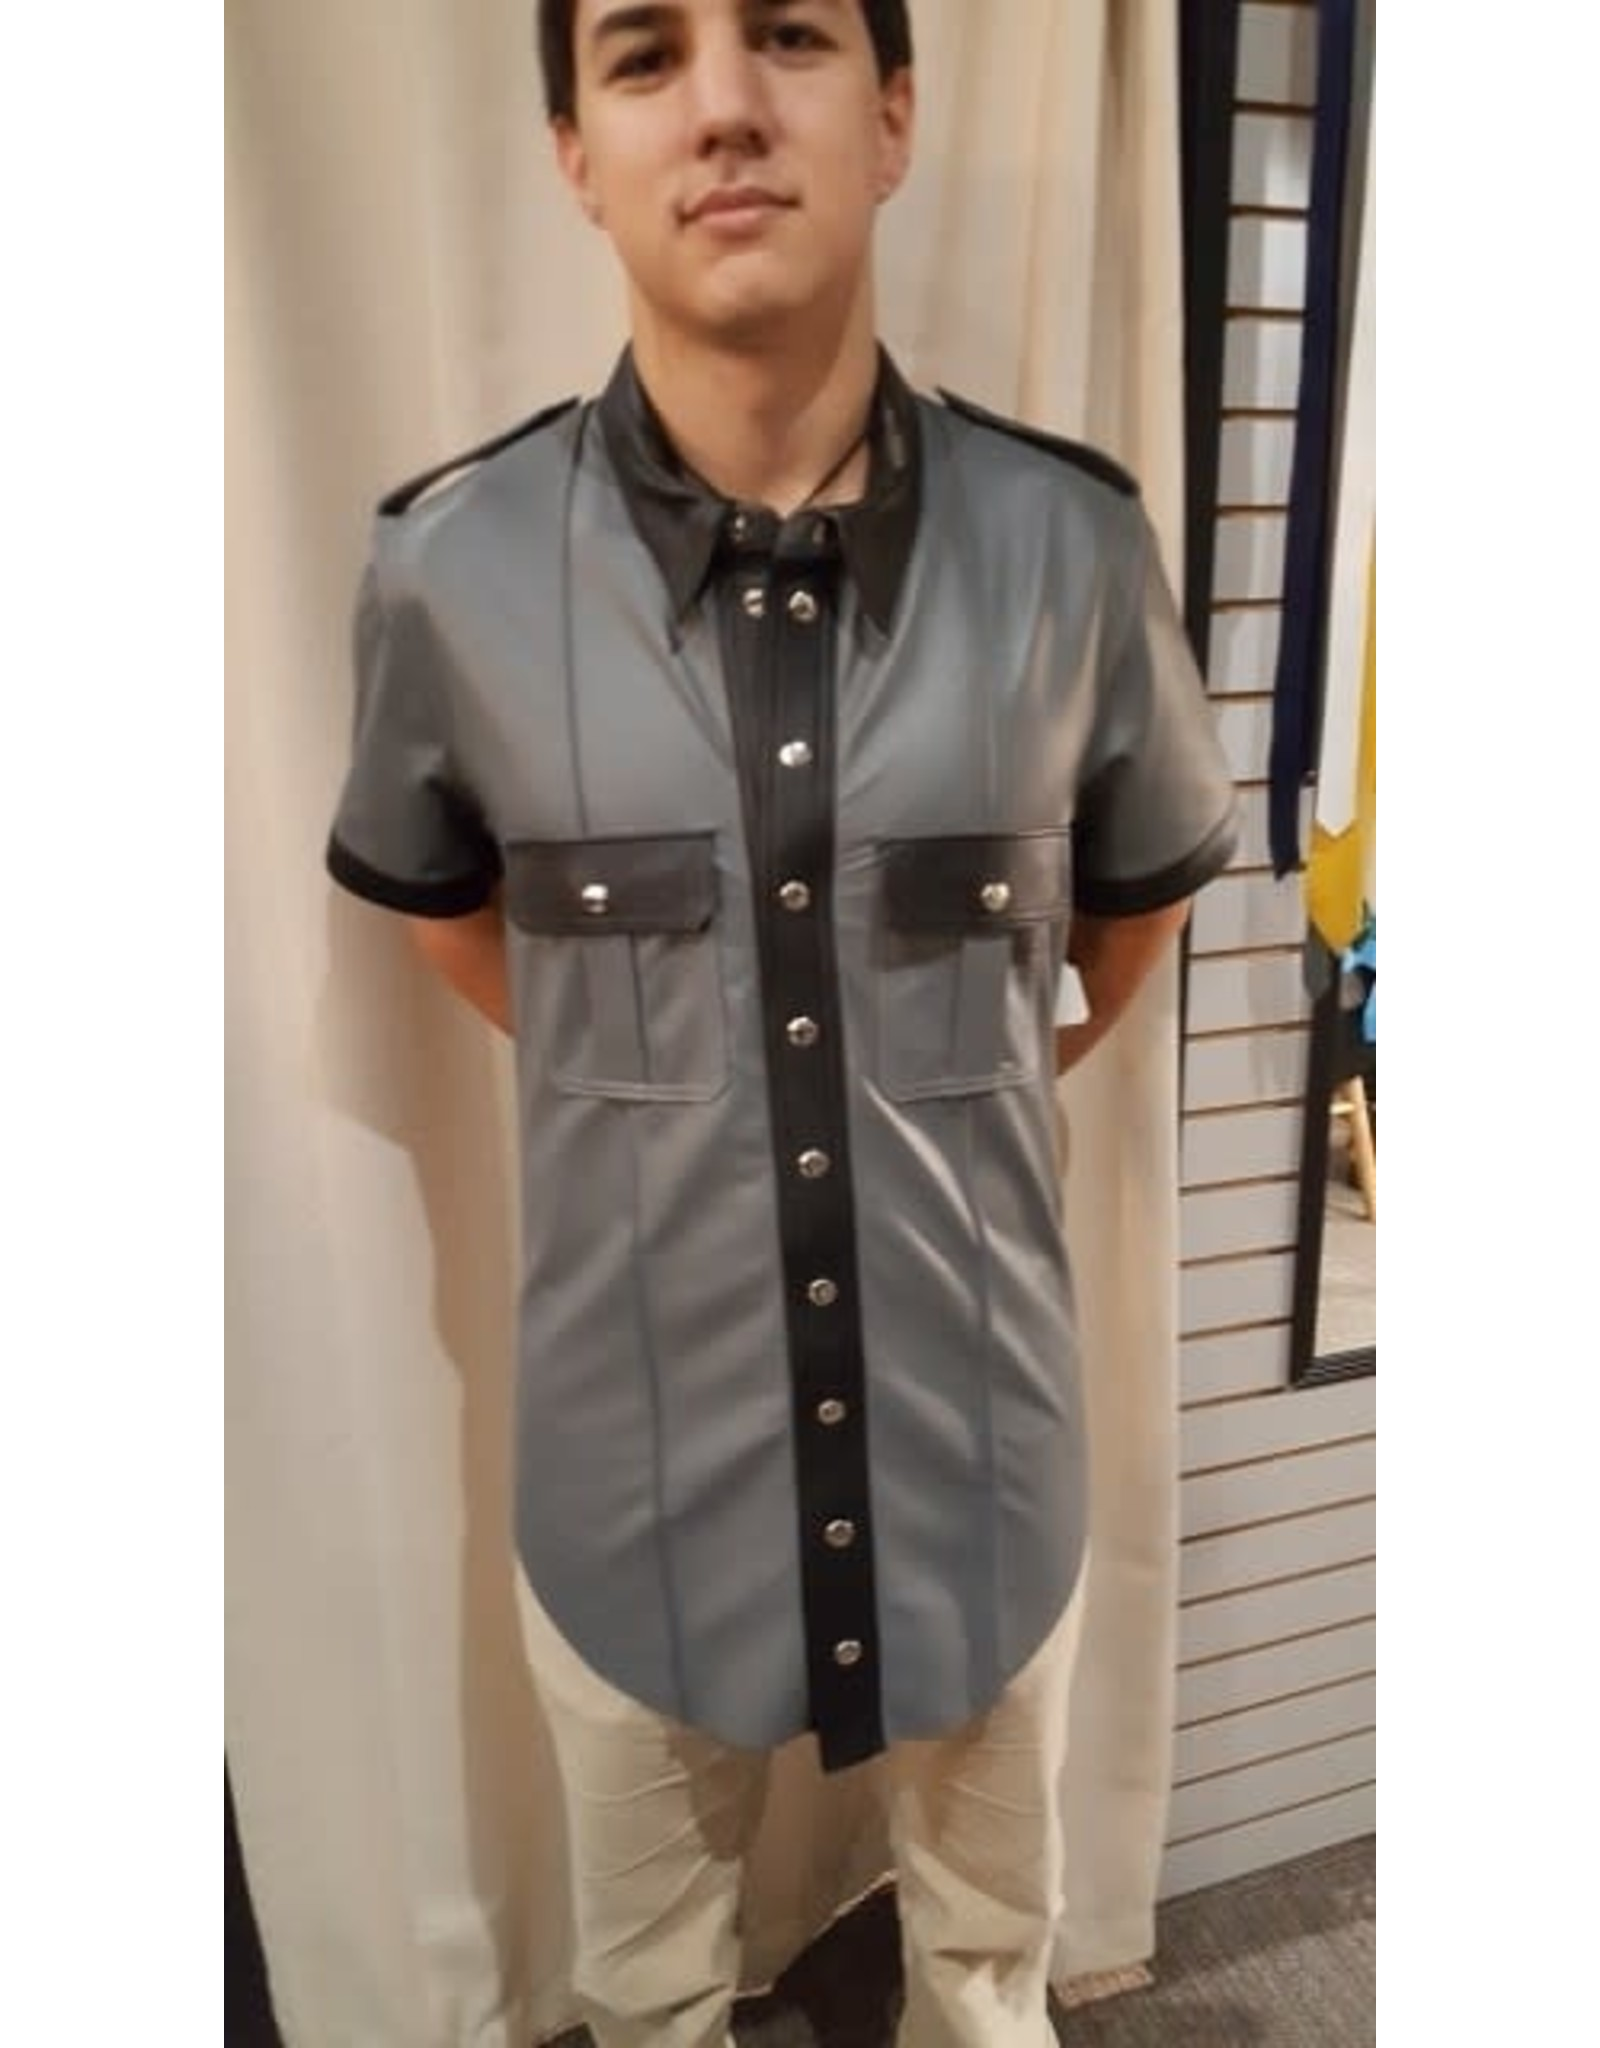 Doghouse Leathers Crafting DH Leathers Uniform Shirt